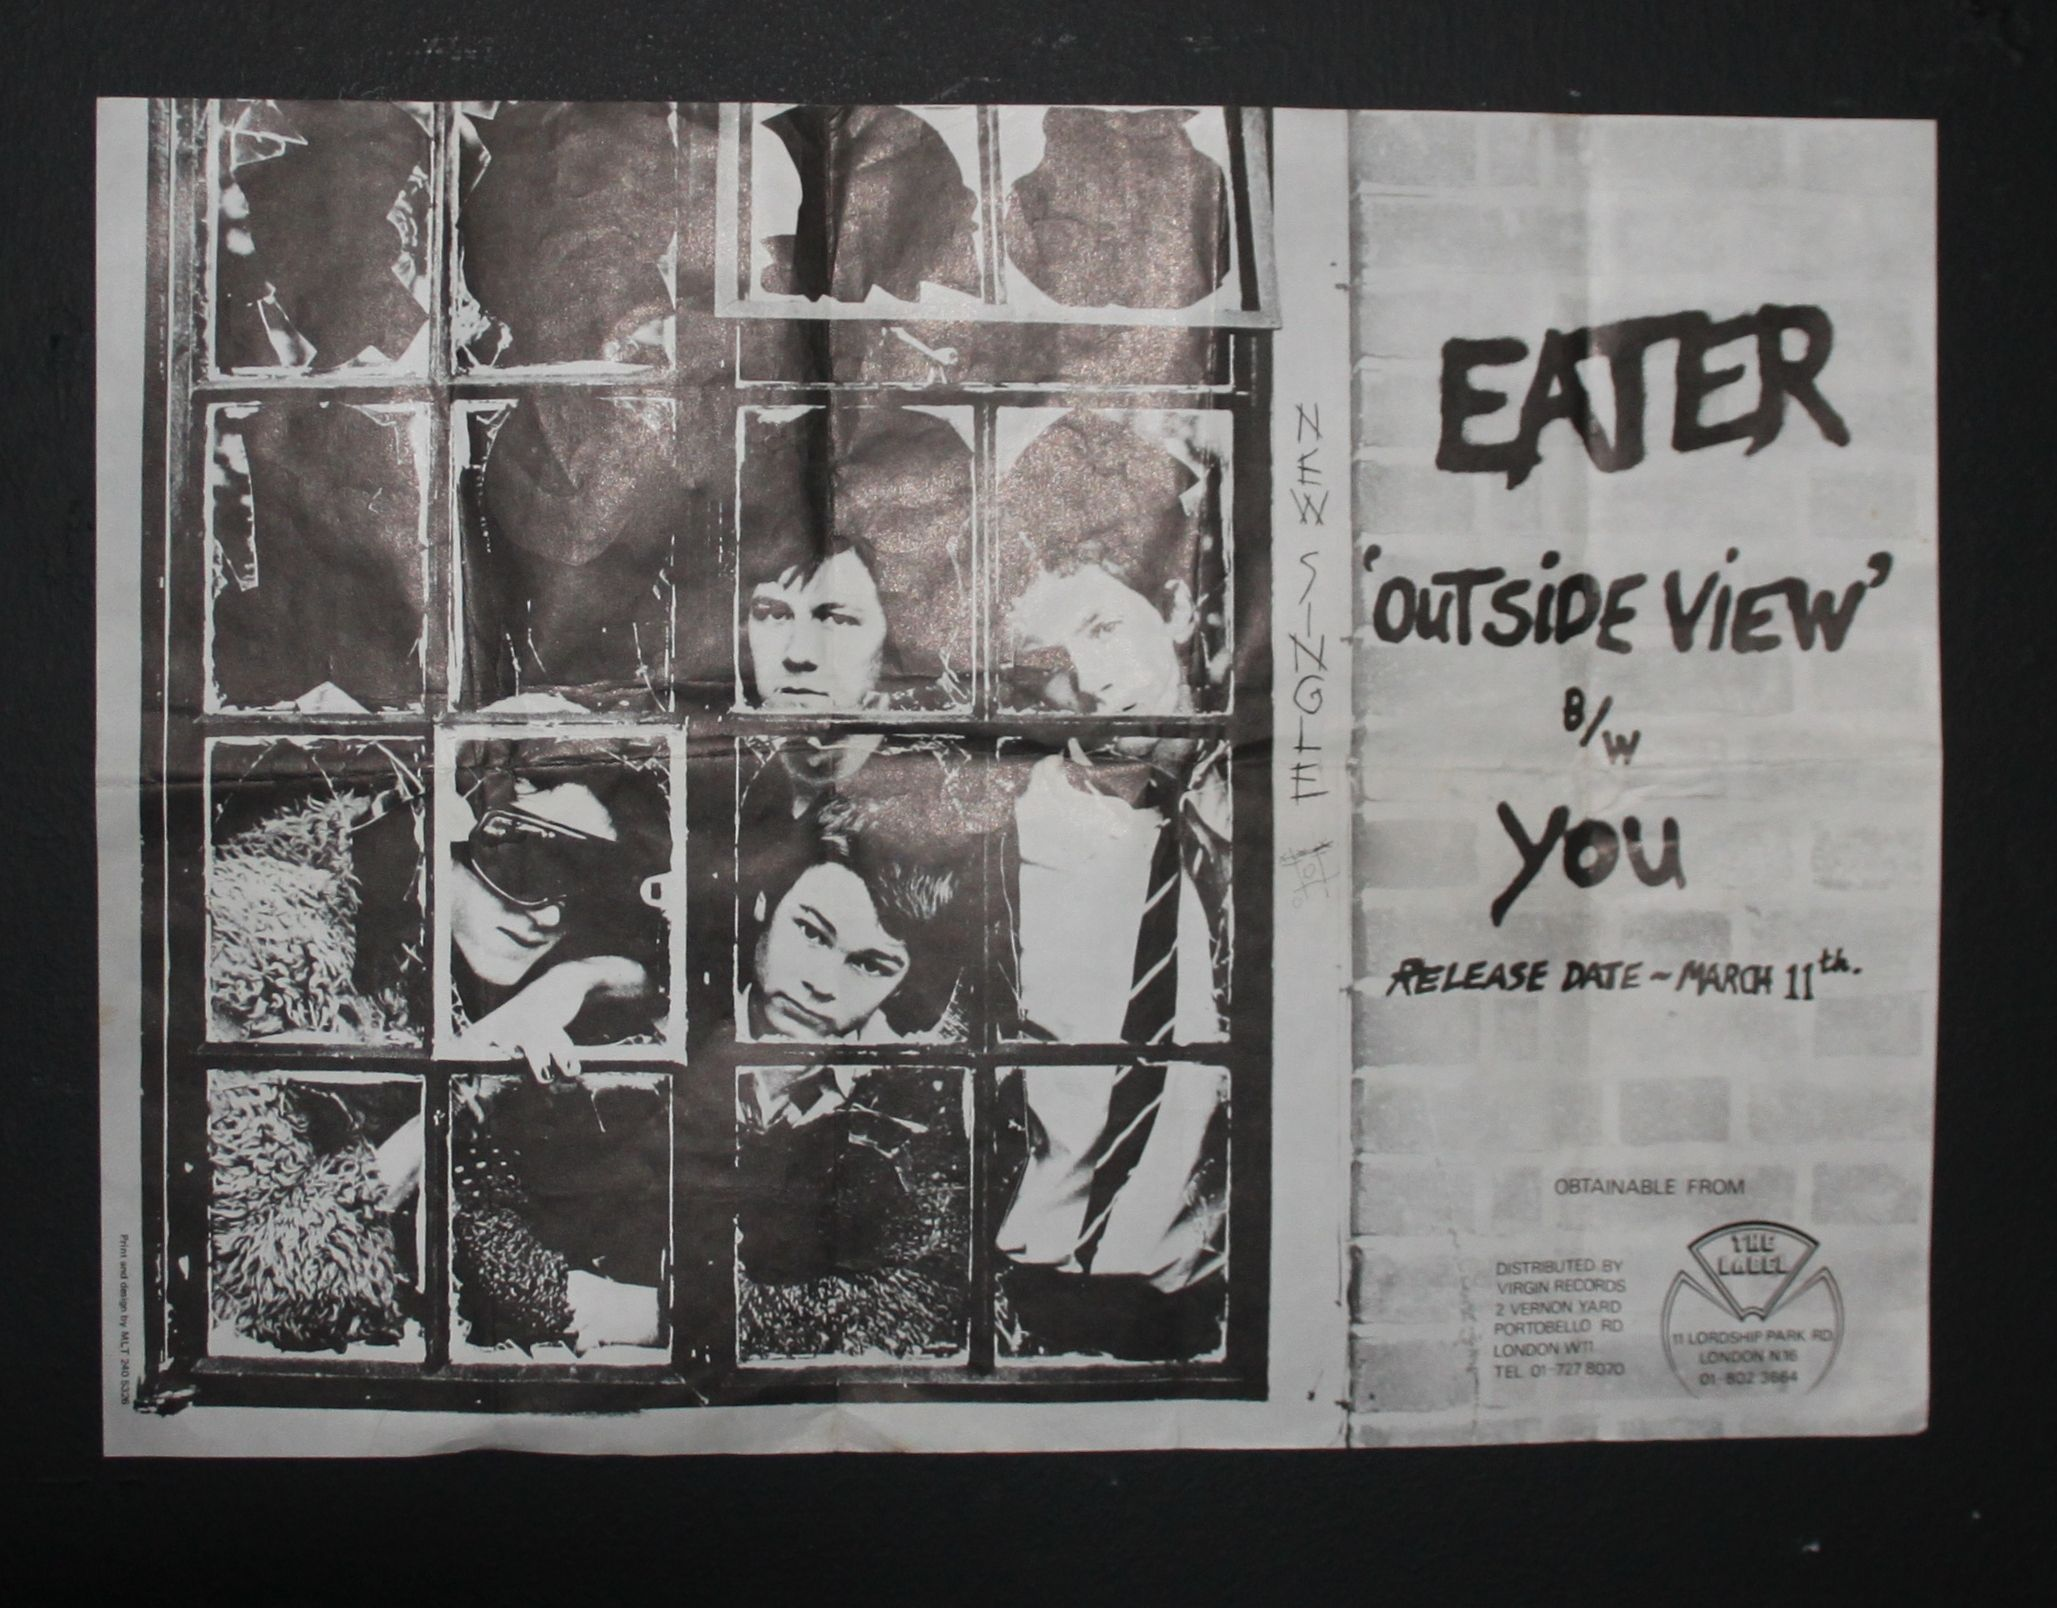 Original 40x37cm the Label Instore Promotional poster For Eater Debut Single Outside View/You from March 1977